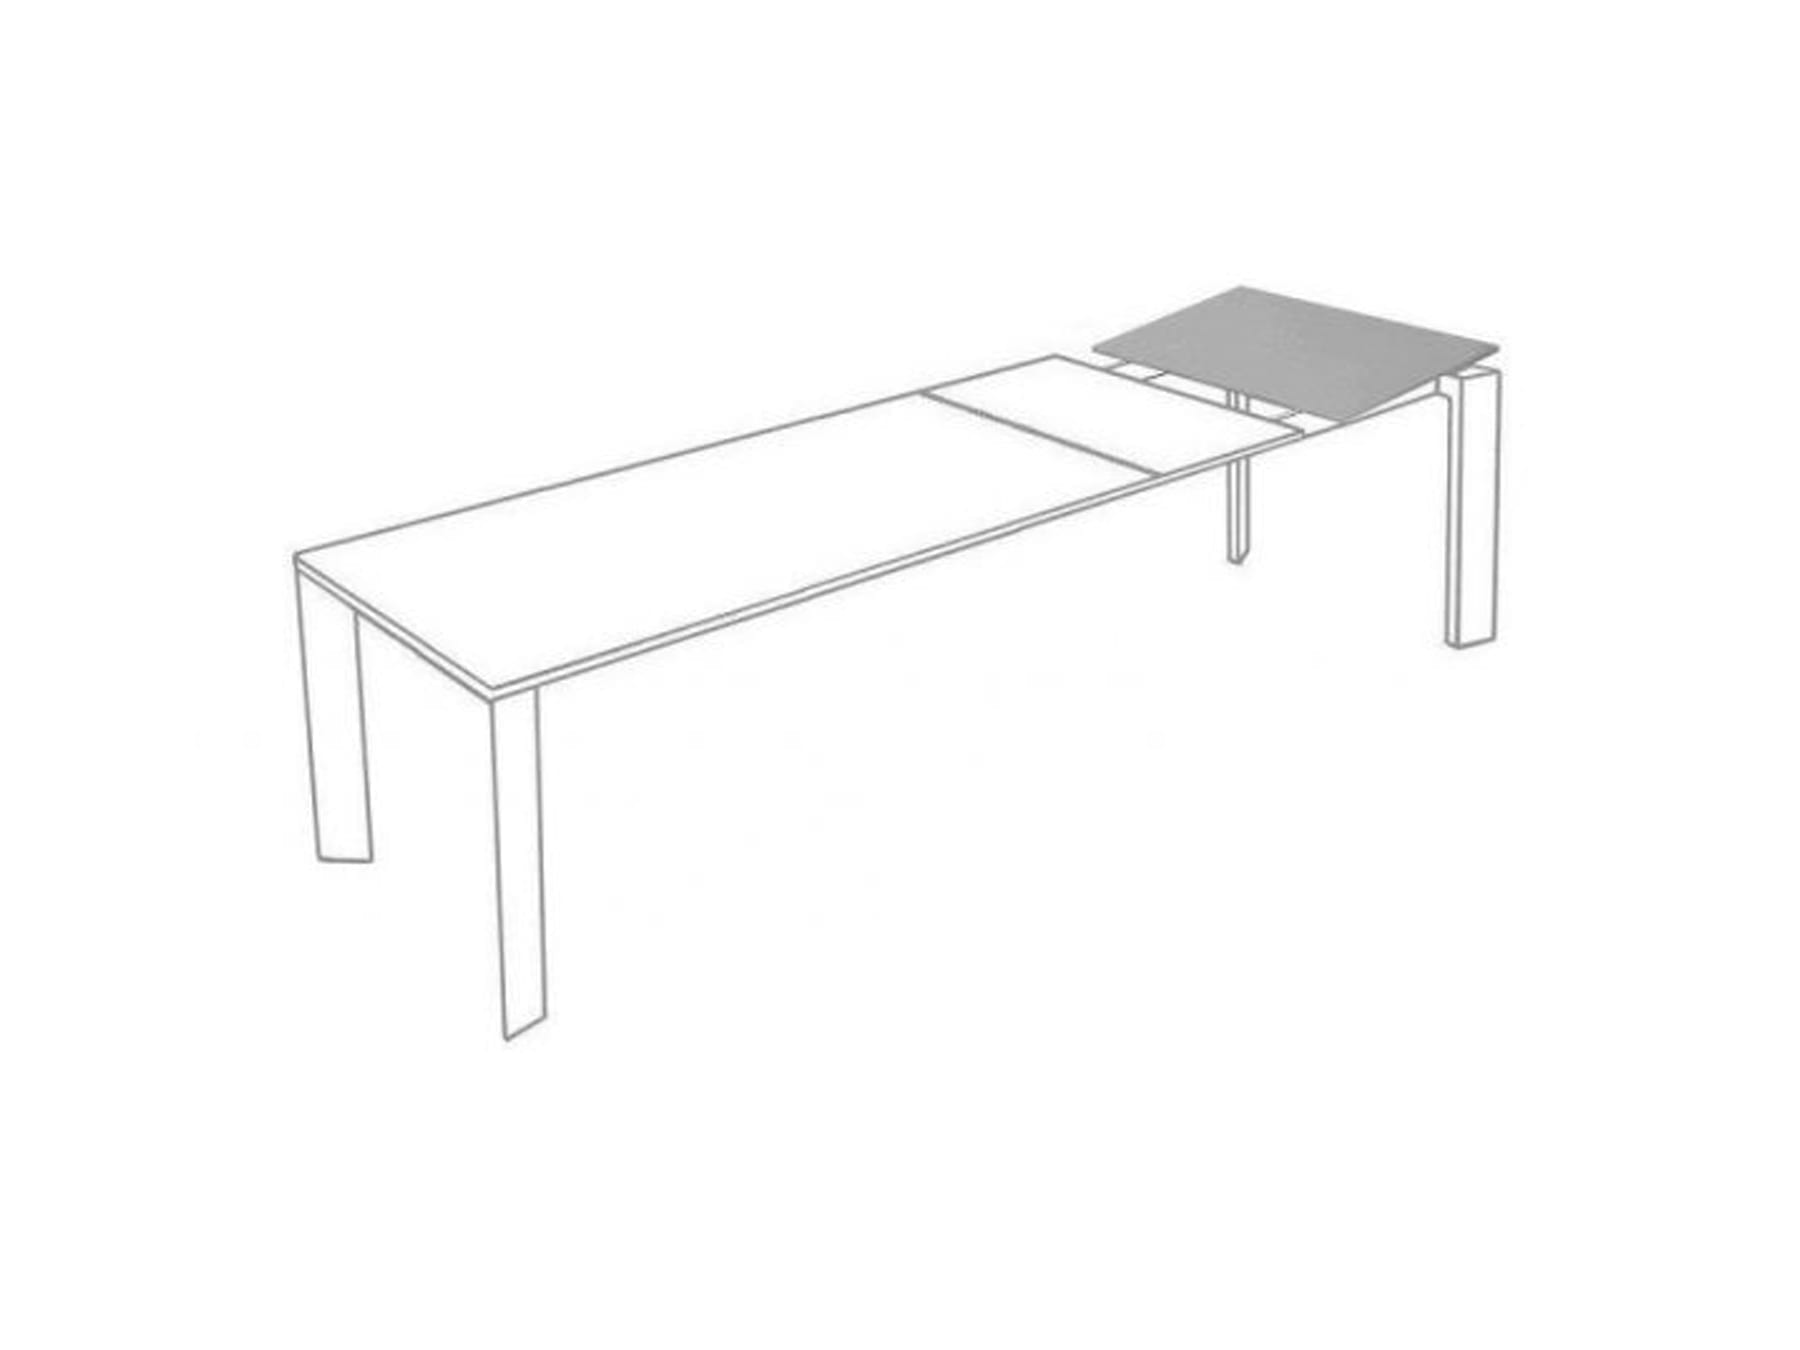 Fast Grande Arche table extension available at McKenzie & Willis